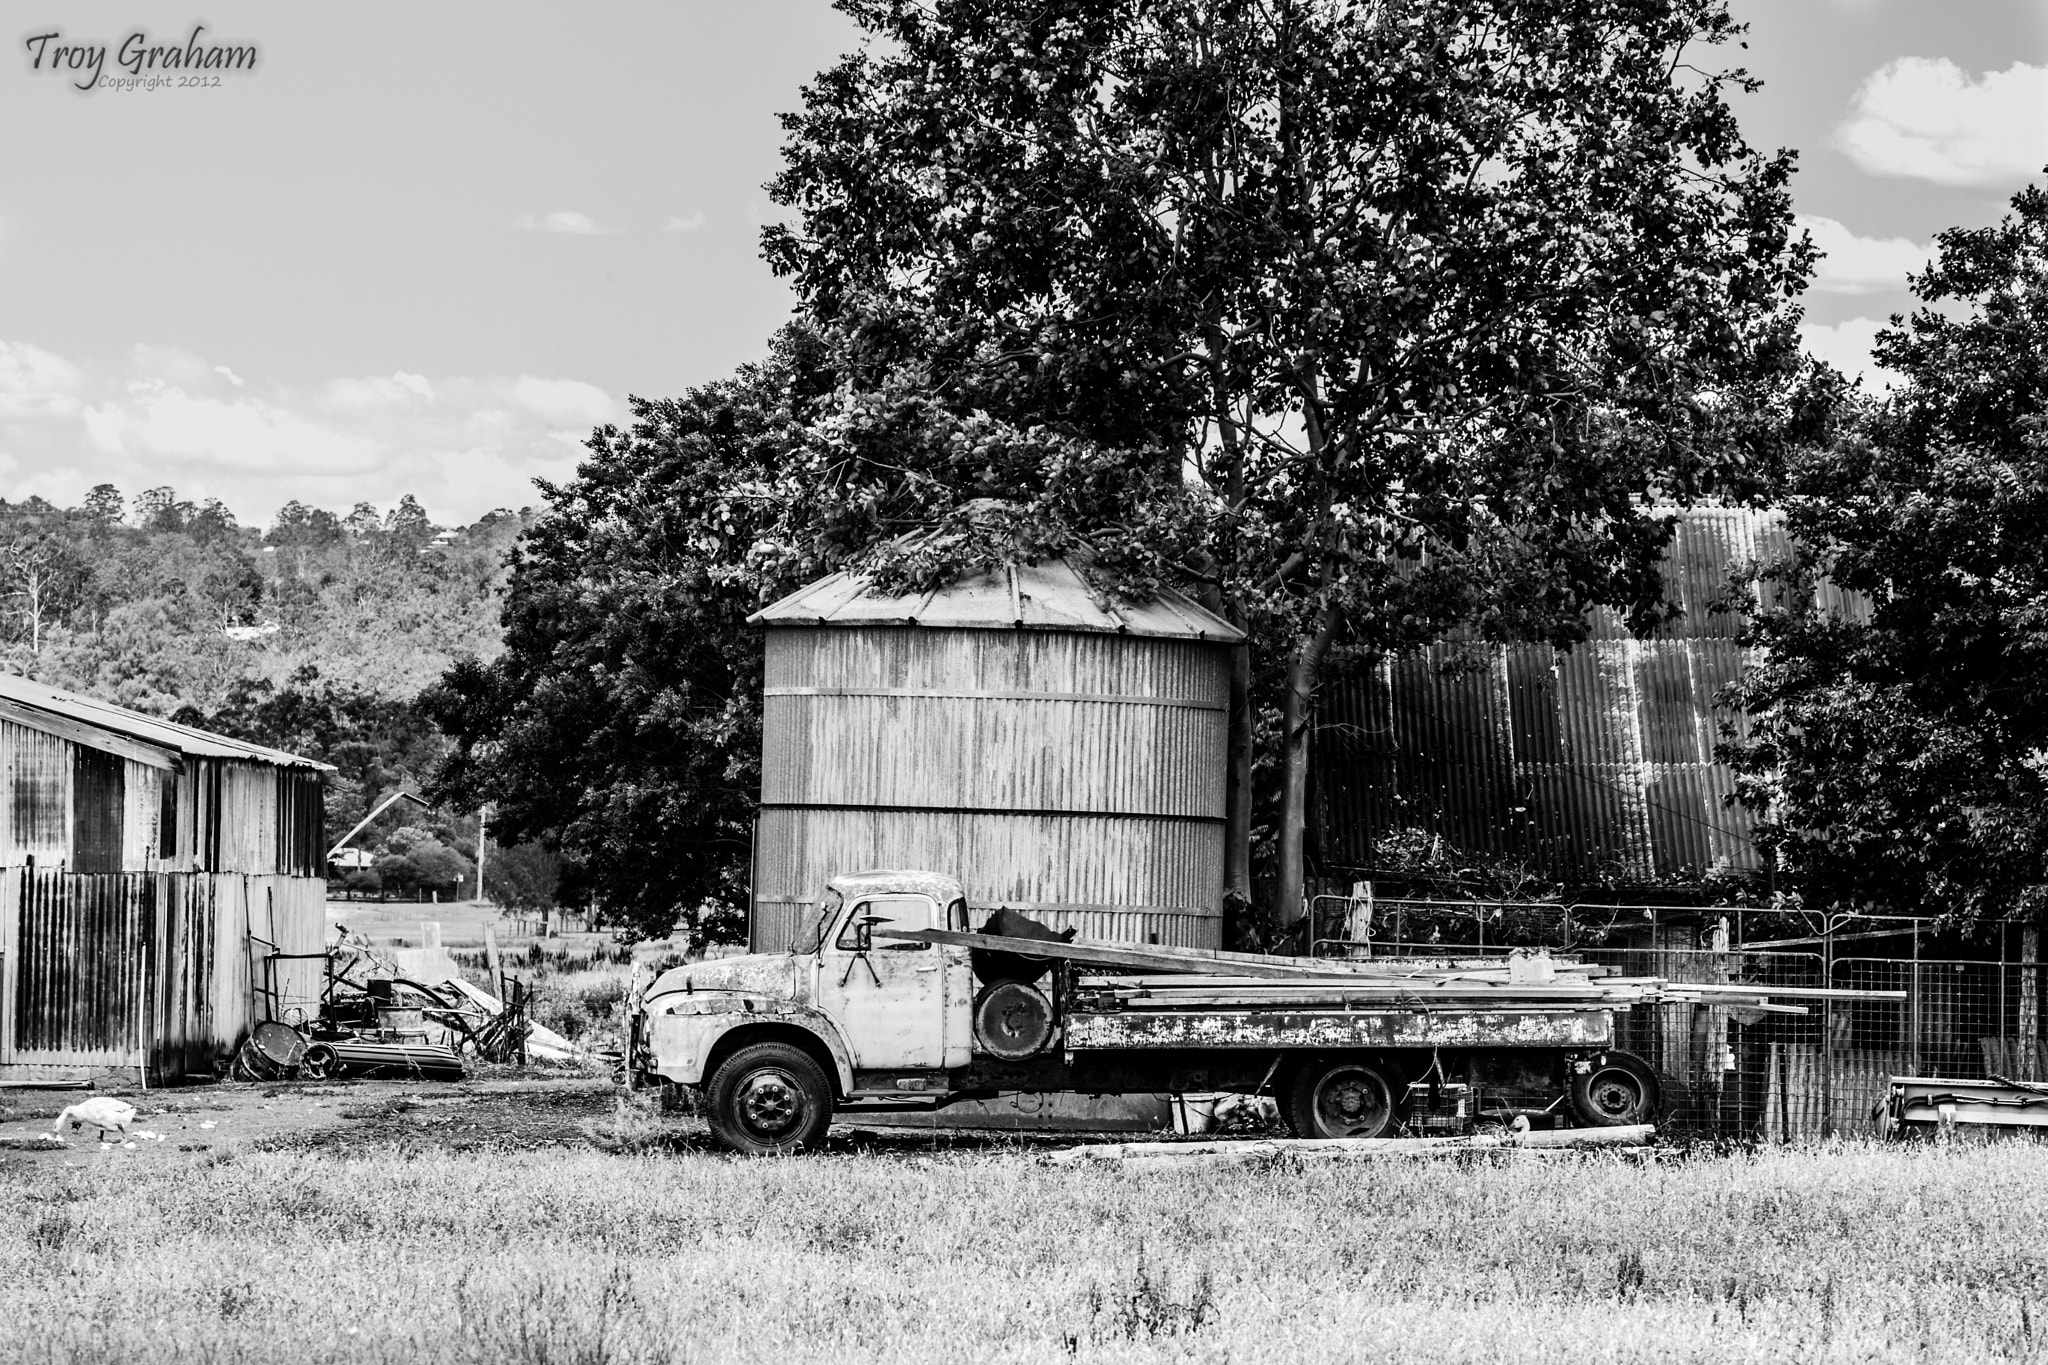 Photograph Old Truck Western by Troy Graham on 500px